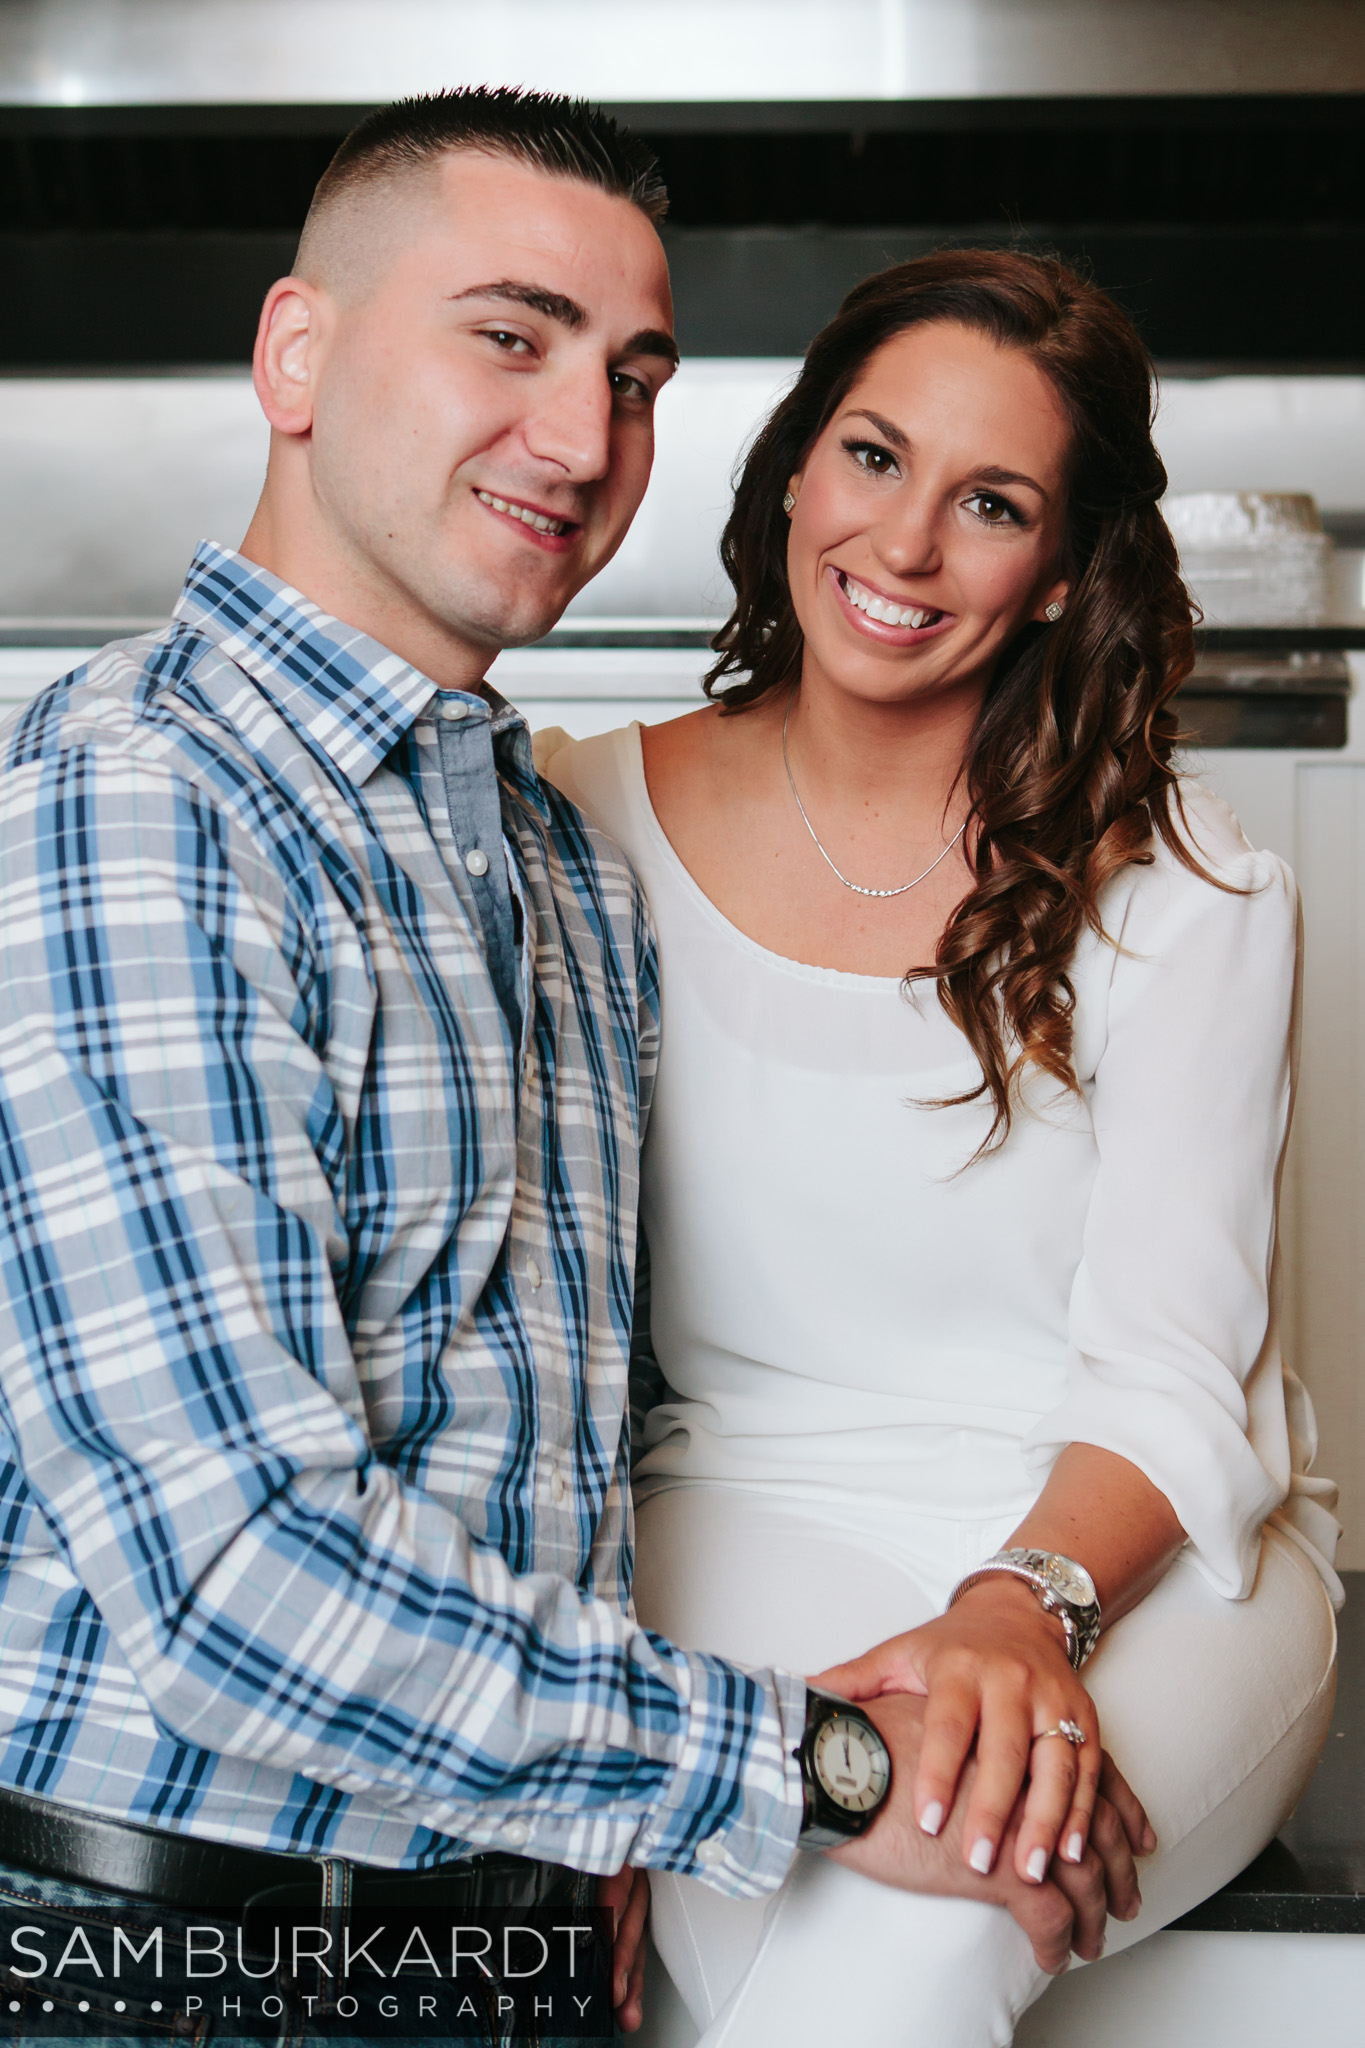 sburkardt_engagement_wedding_candlewood_lake_photography_004.jpg